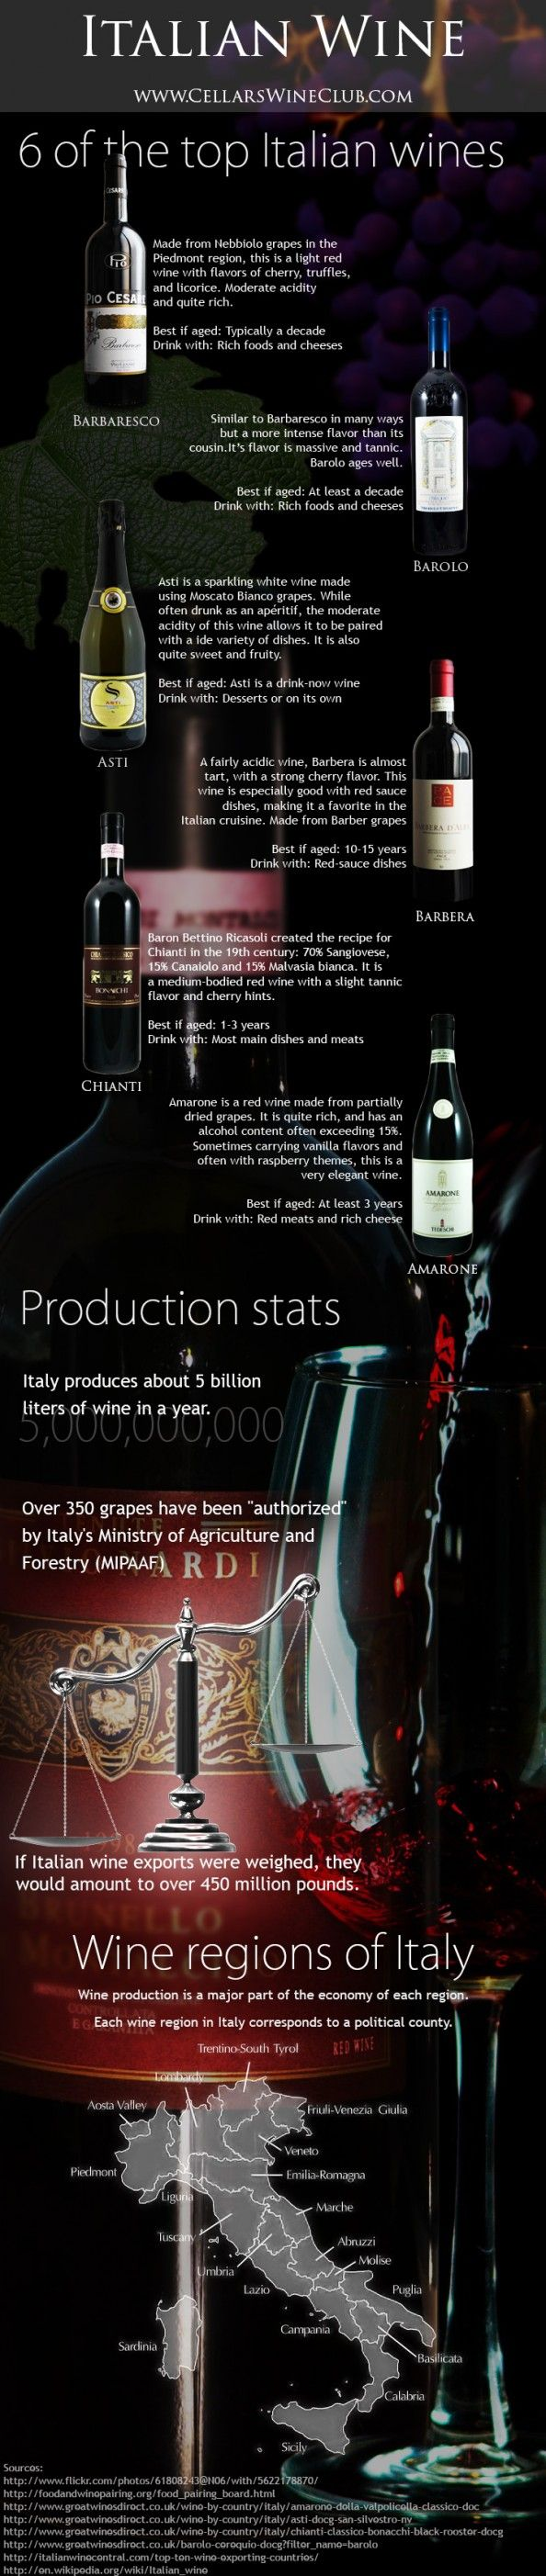 ⚜ Vinos / Wines: Lowdown on Italian Wine